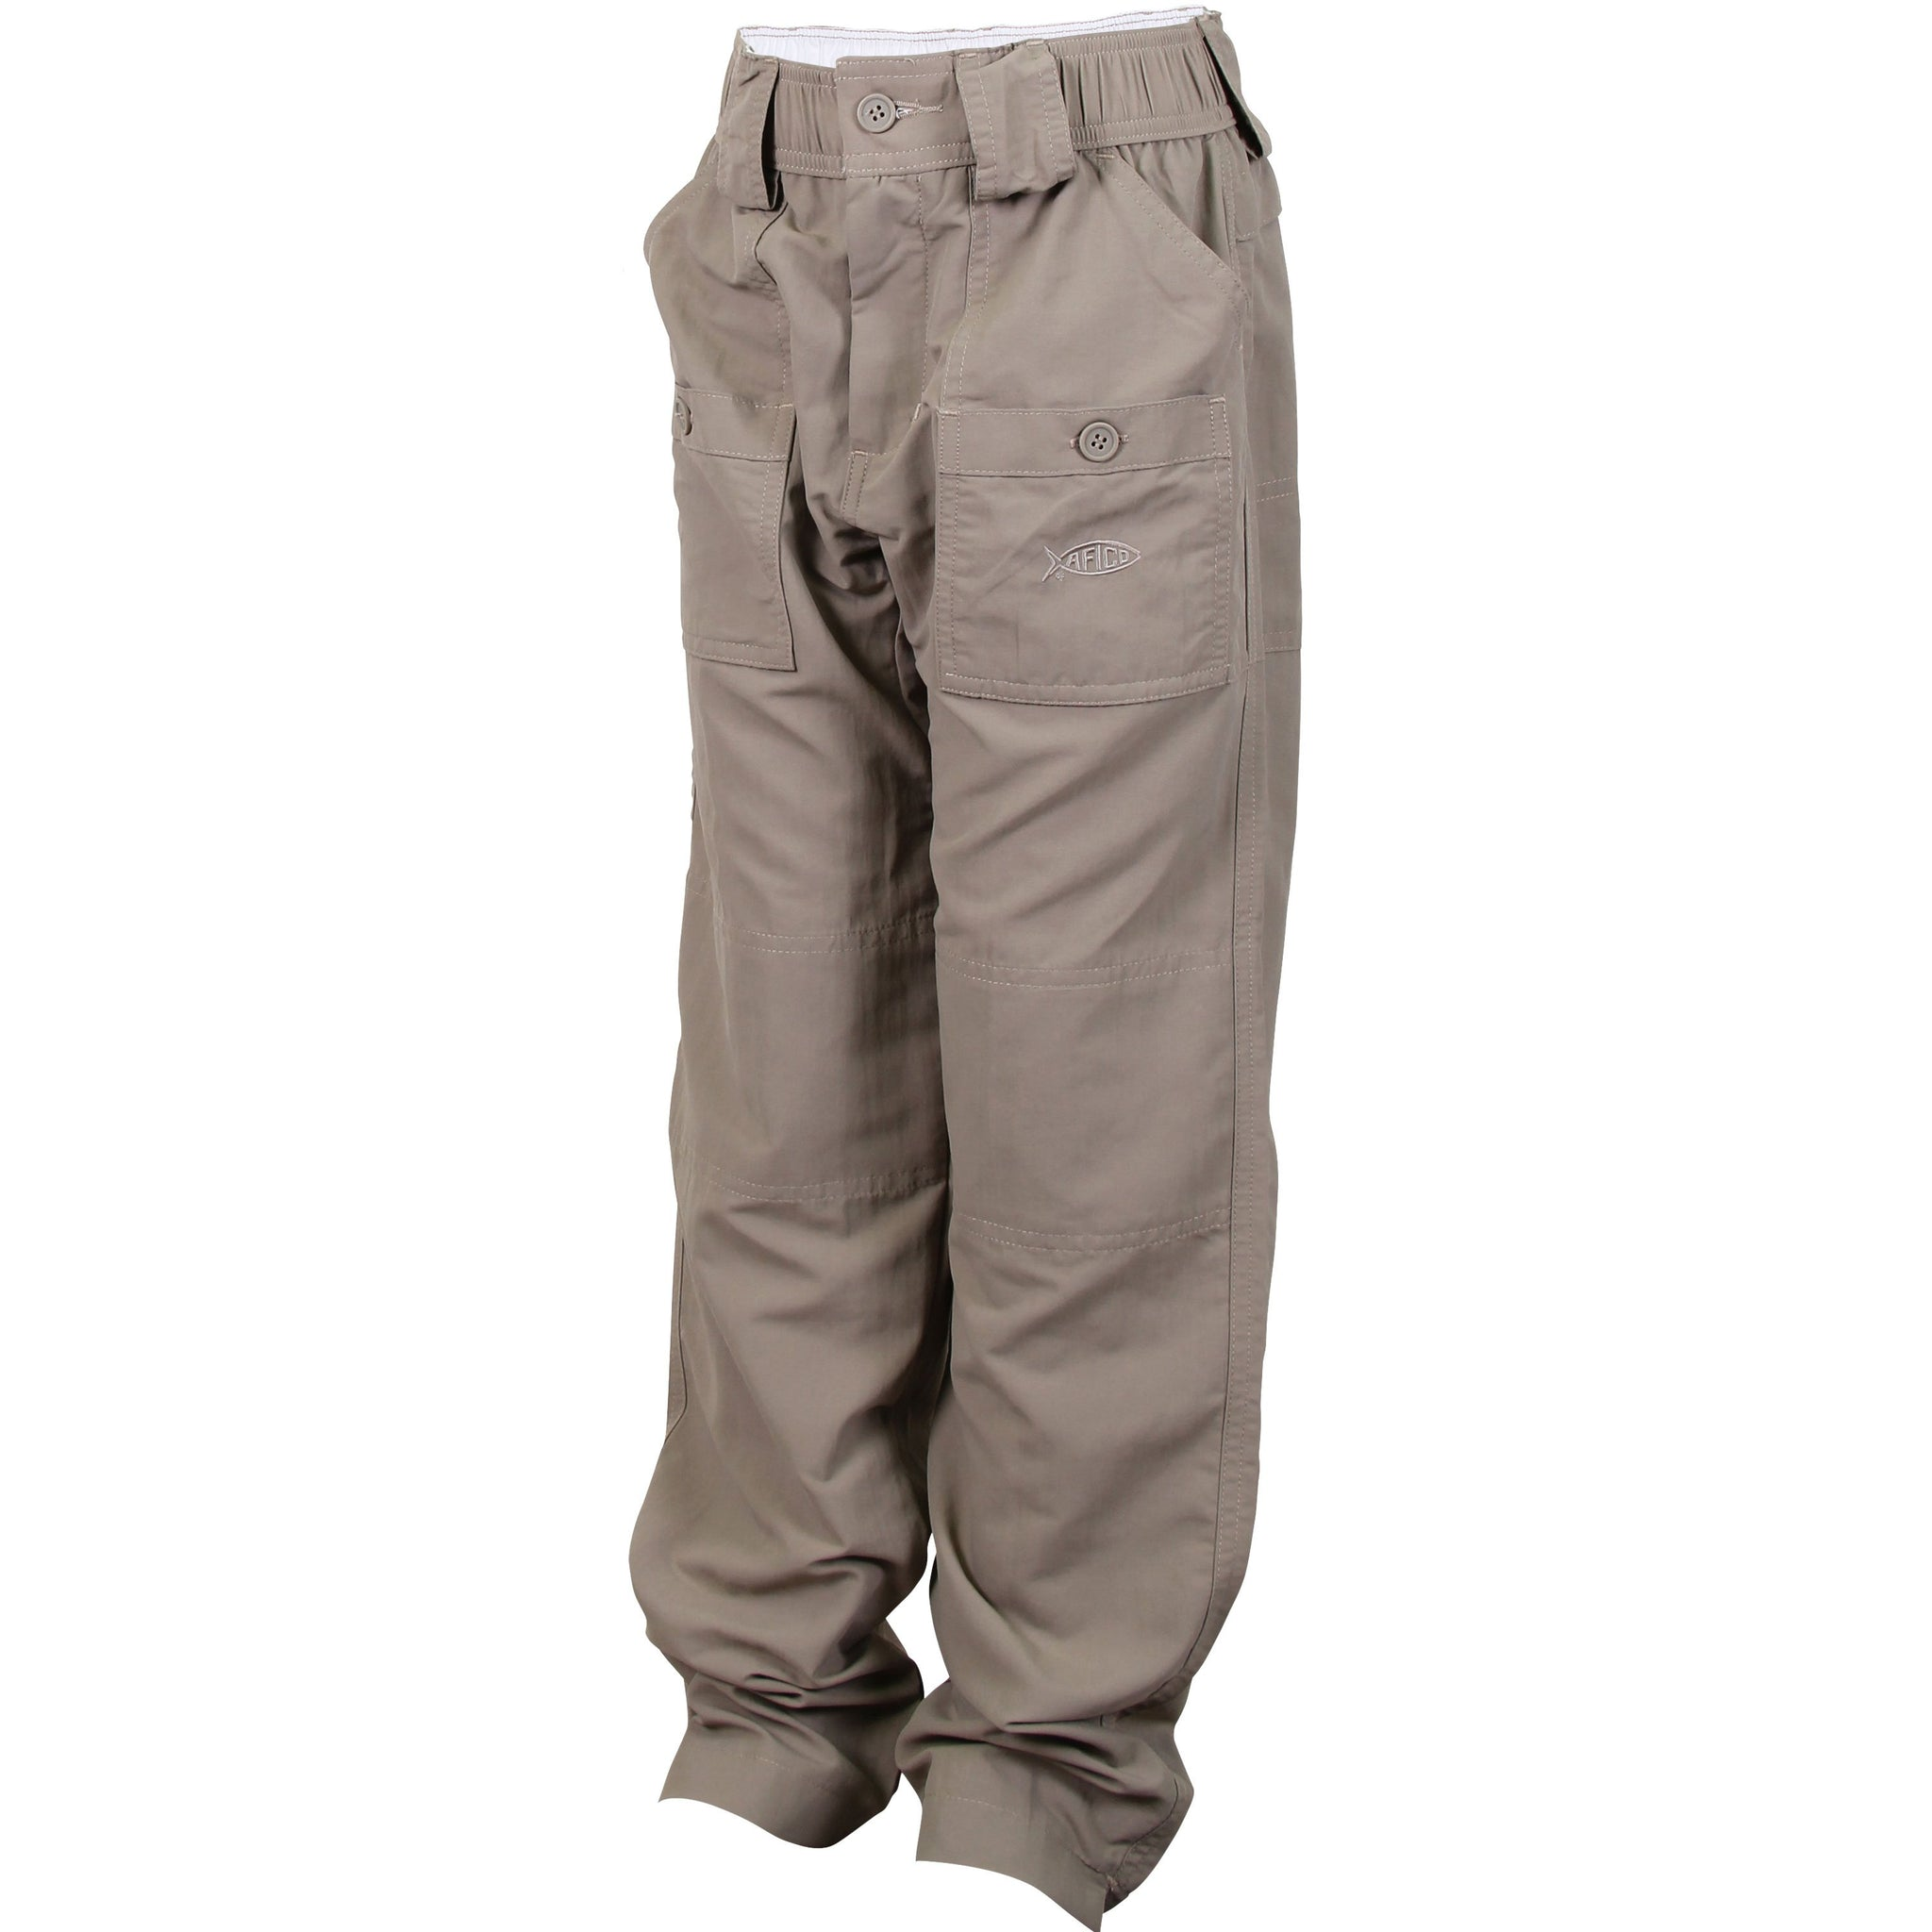 Youth Original Fishing Pants